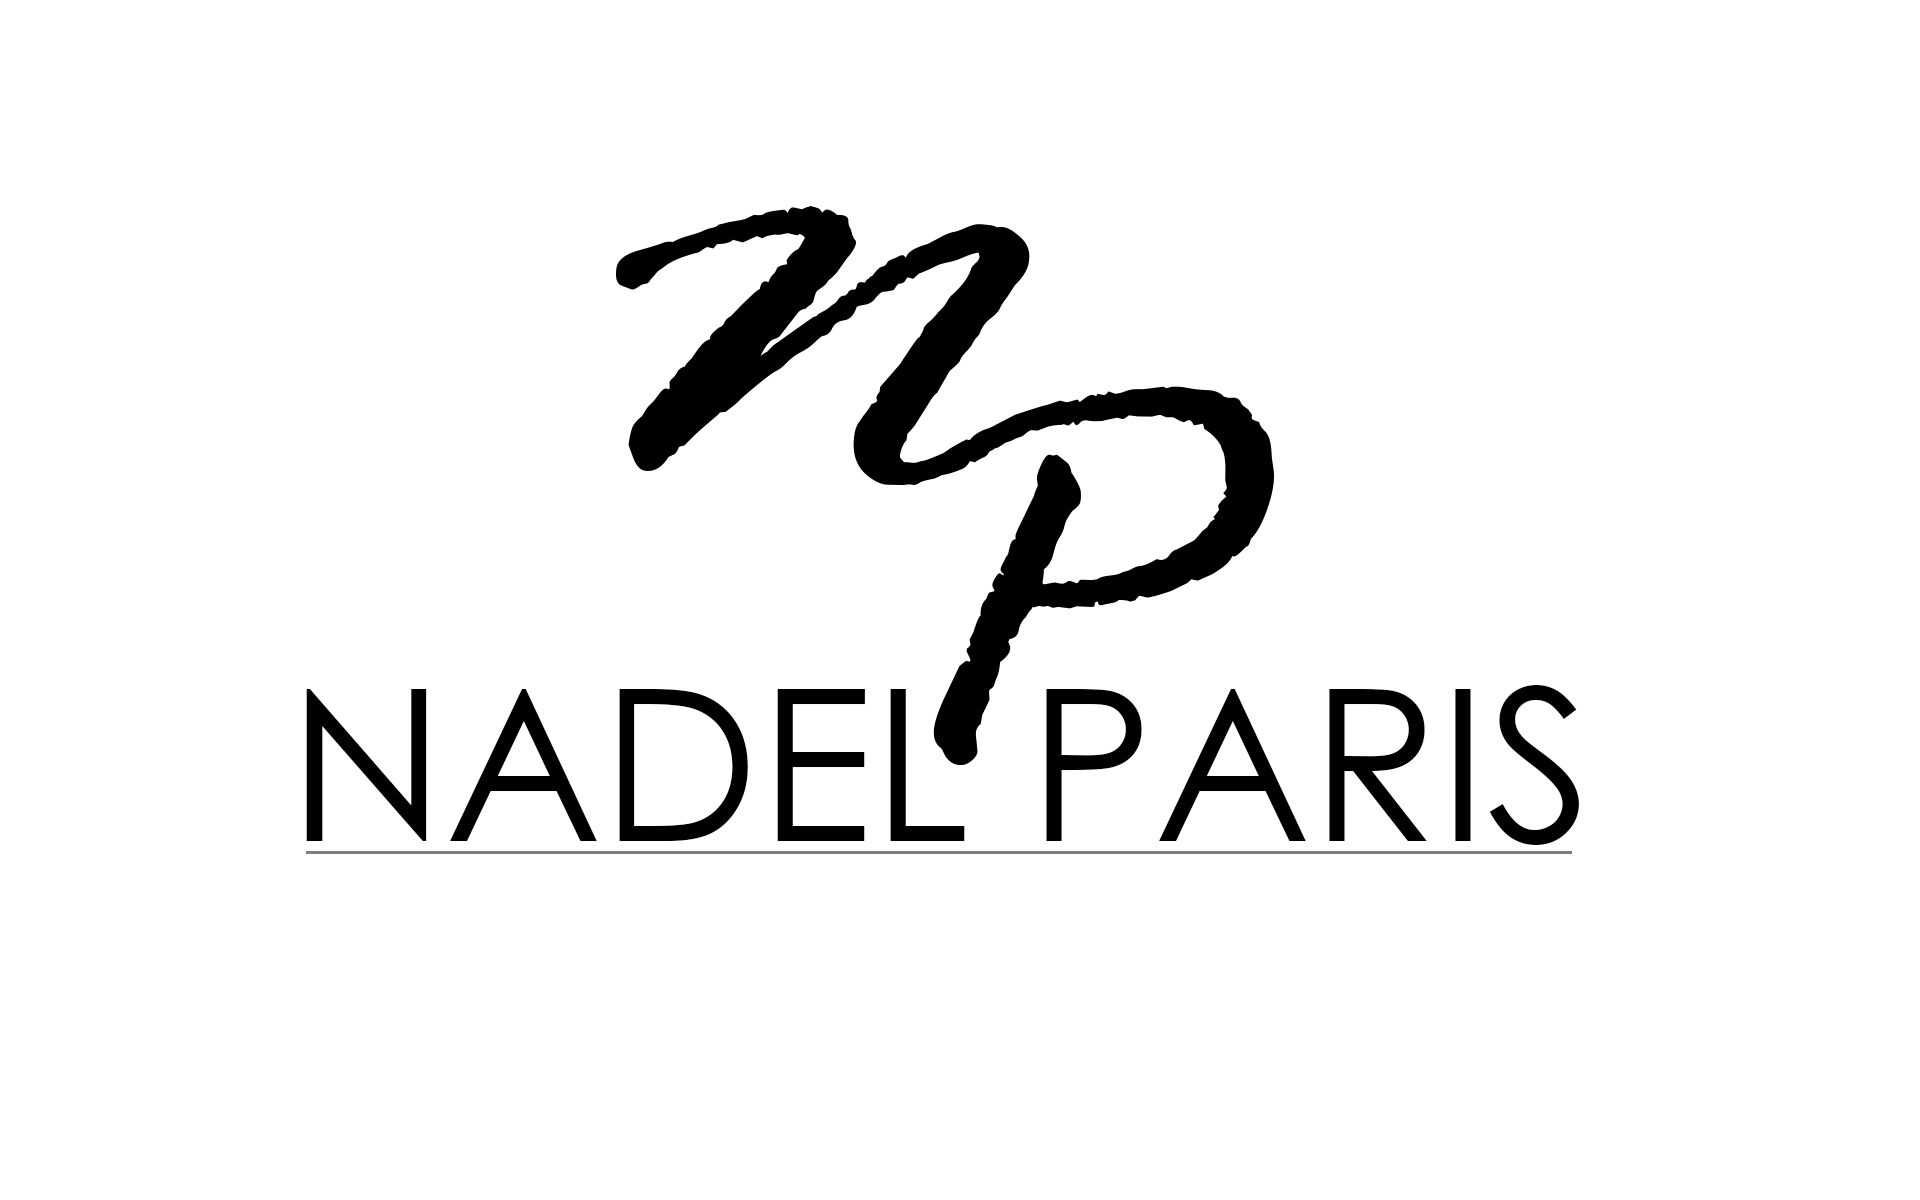 NADEL PARIS